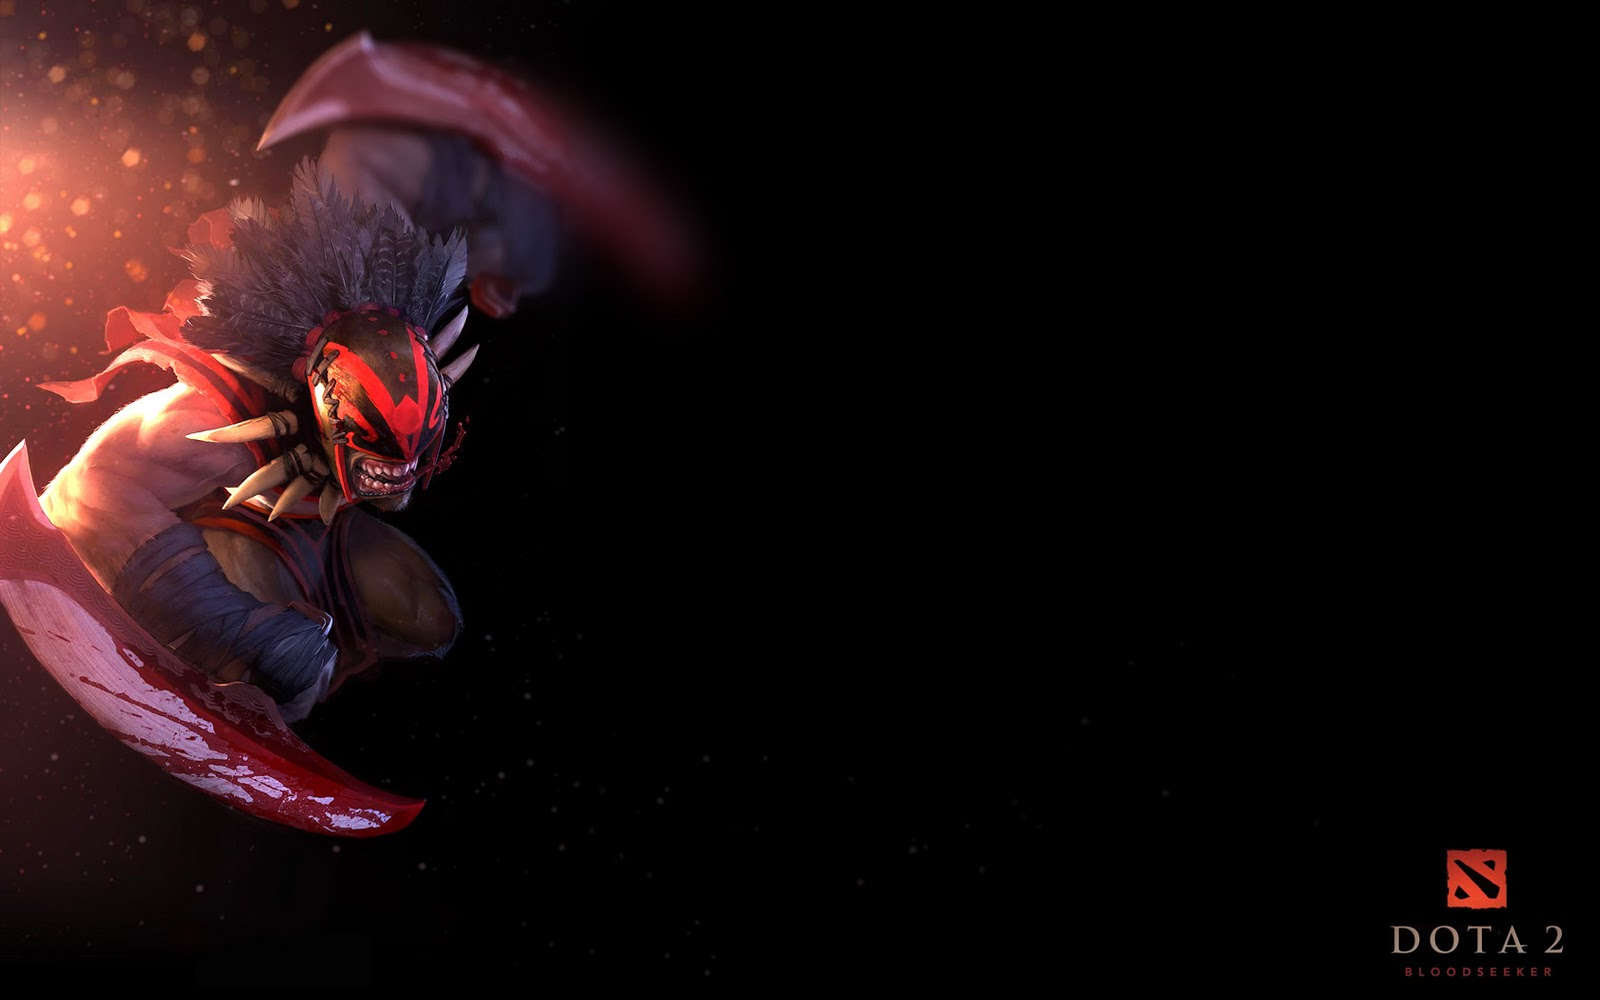 Dota 2 Wallpapers: Dota 2 Wallpaper - Bloodseeker ...